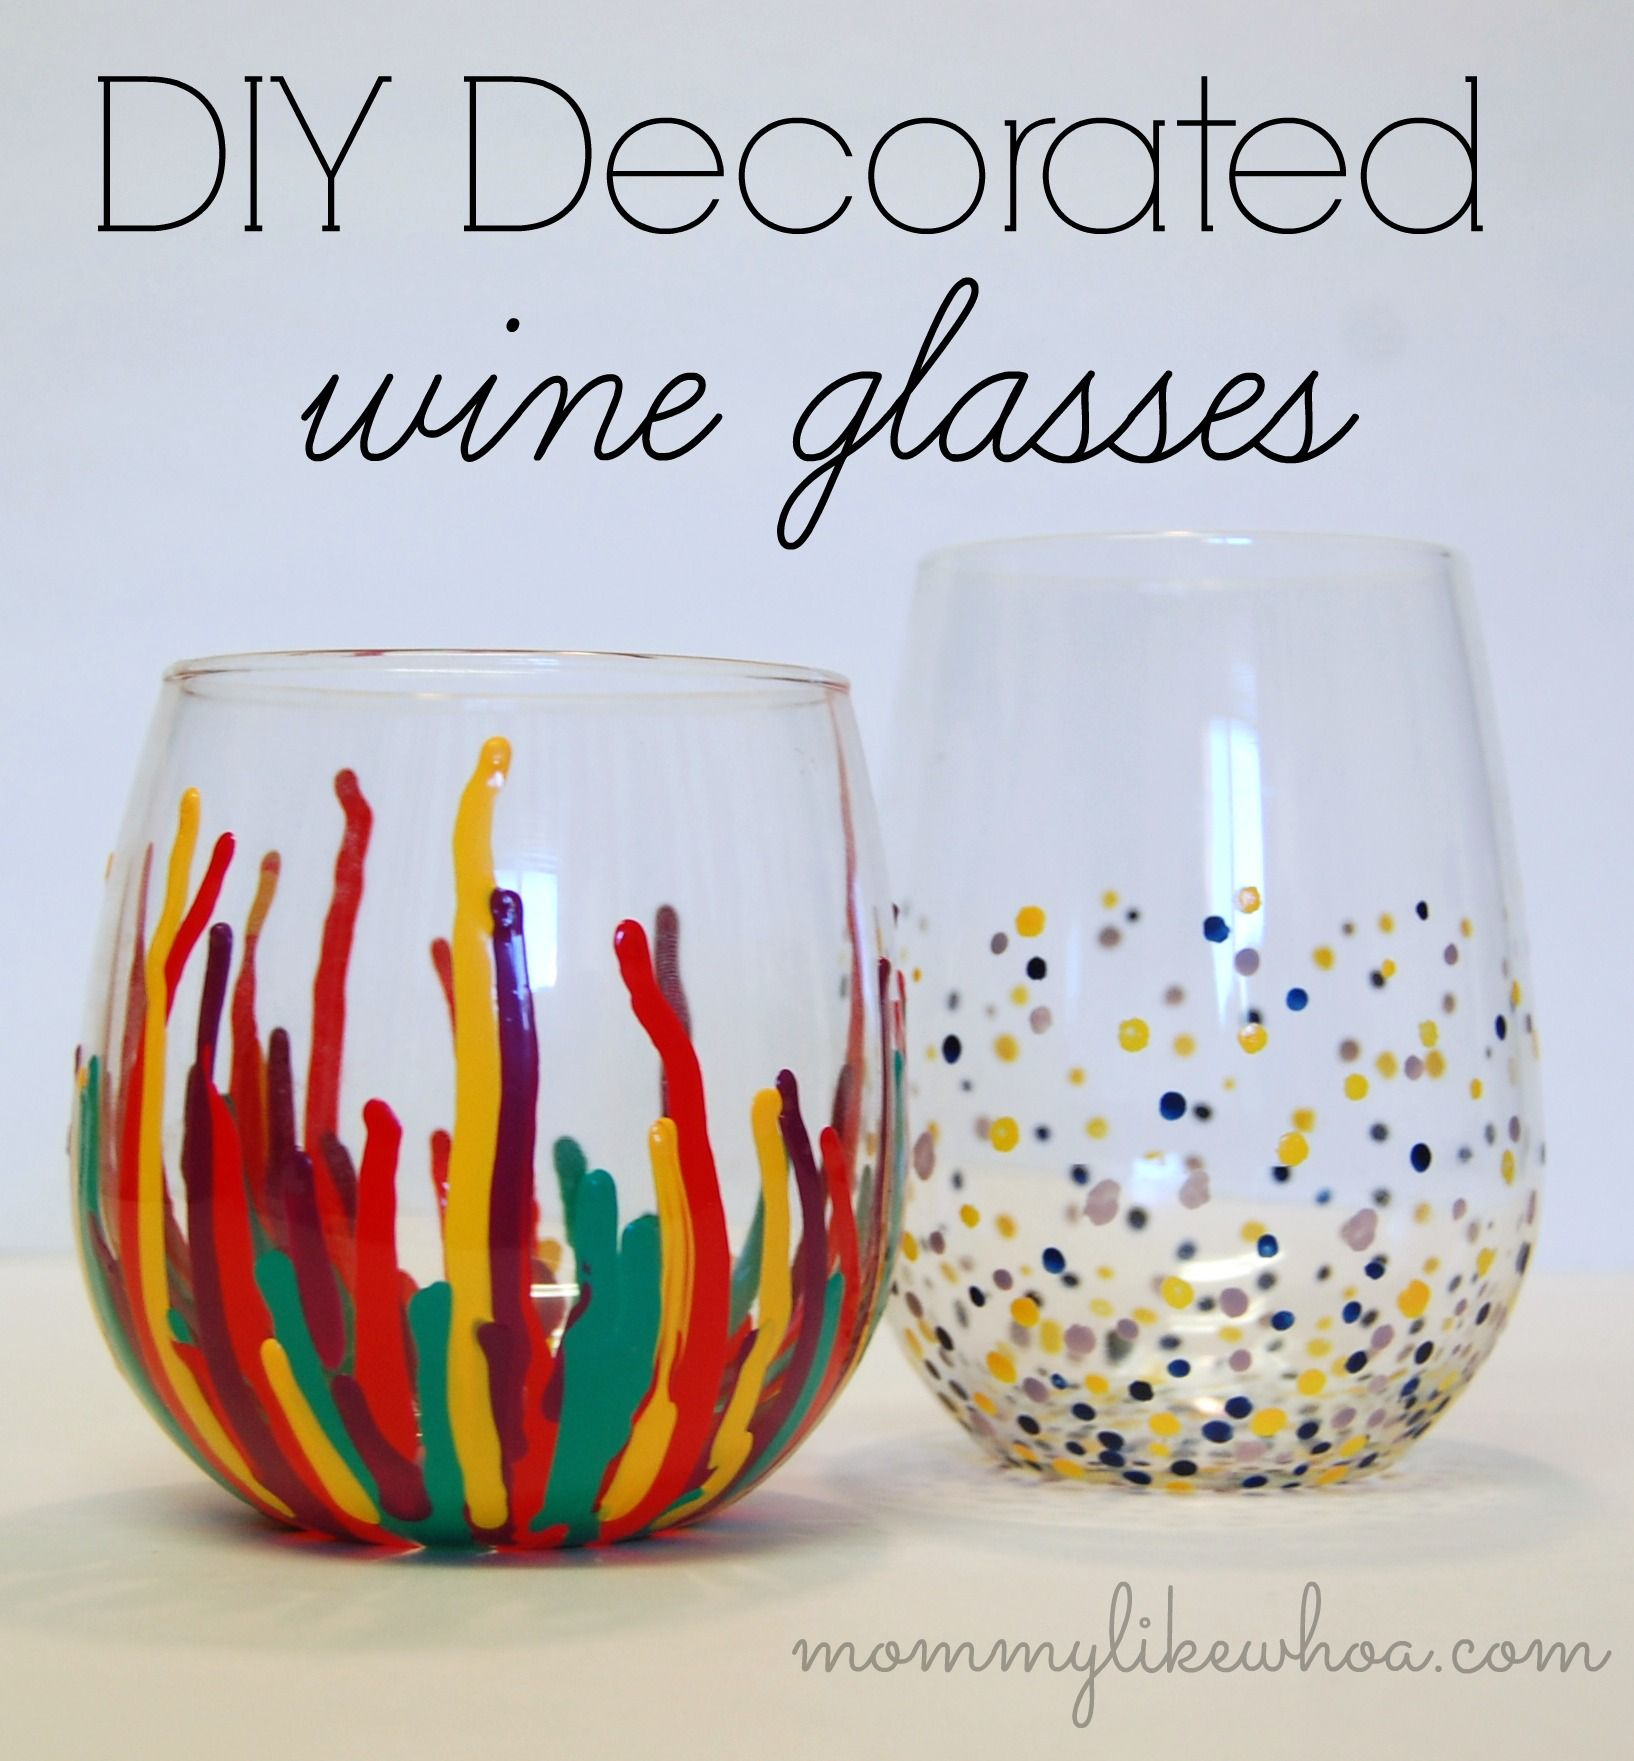 Glass cups decoration - Diy Decorated Wine Glasses